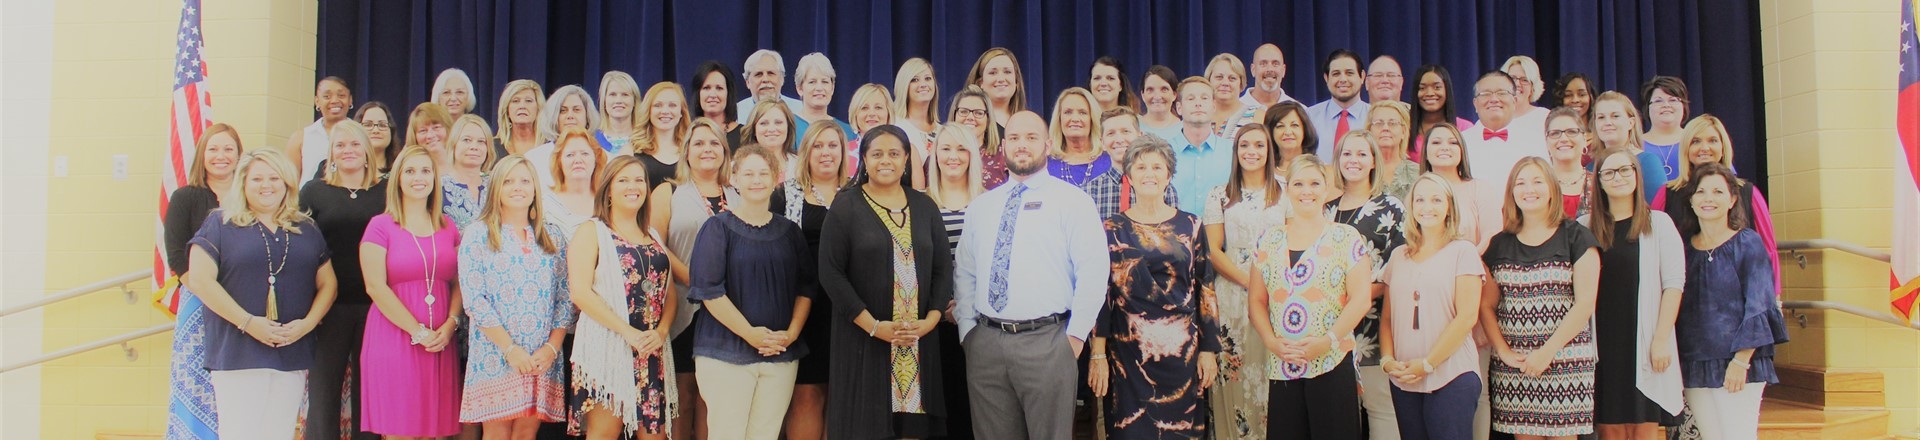 WCES Staff - 2017-2018